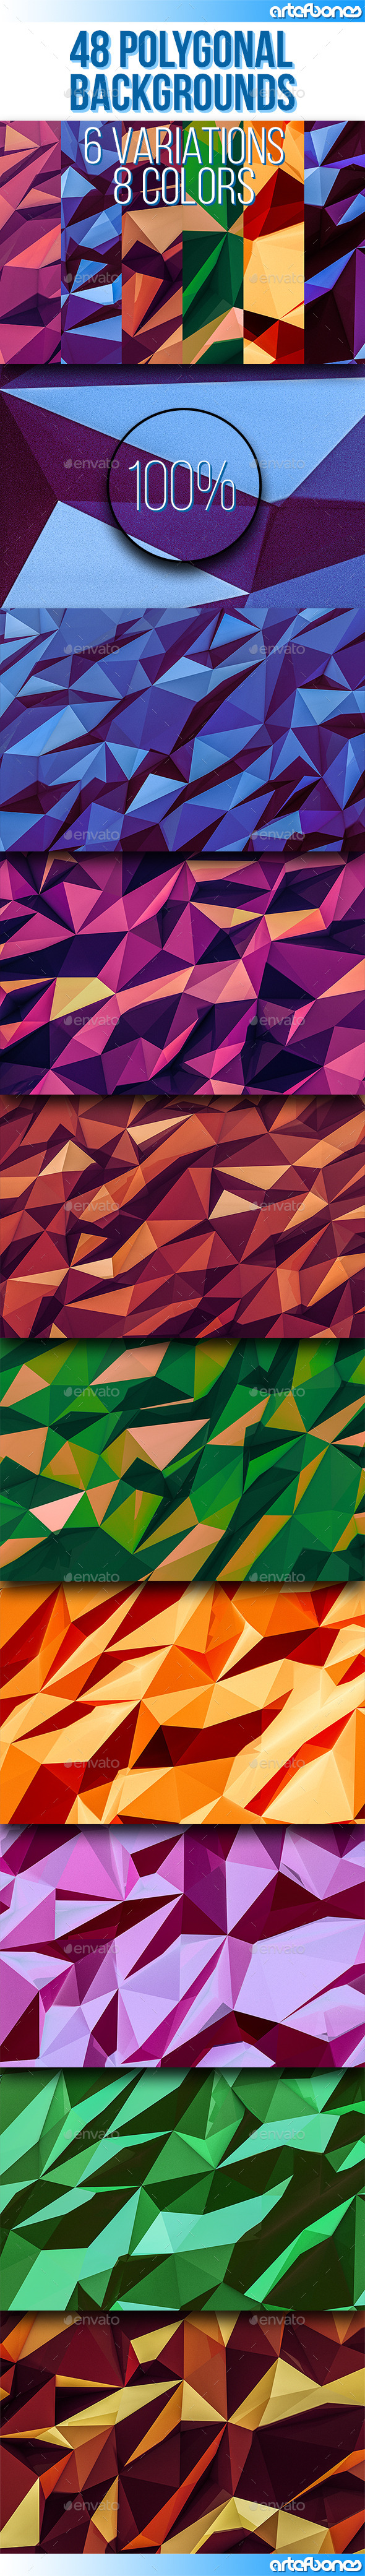 48 Polygonal Backgrounds Vol.2